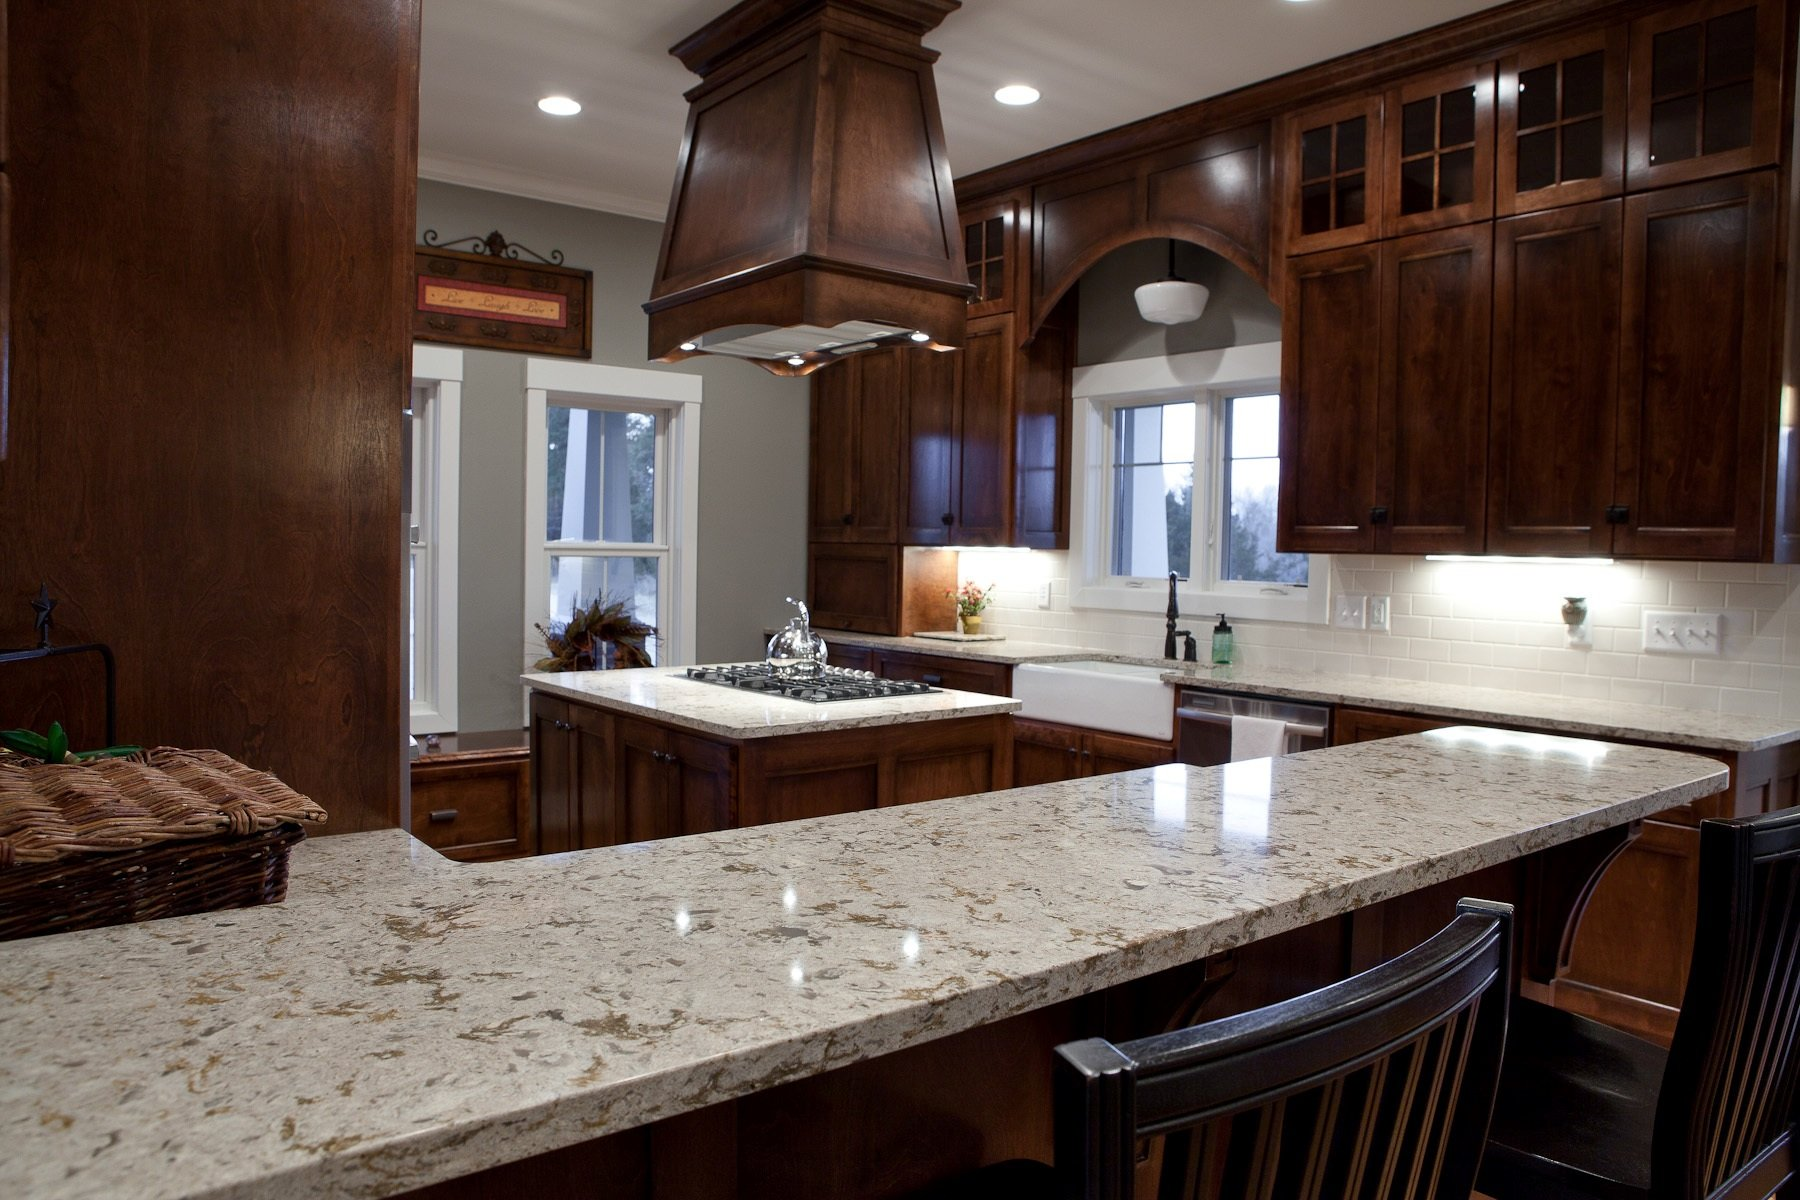 11 Kitchen Countertop Options and Ideas for 11